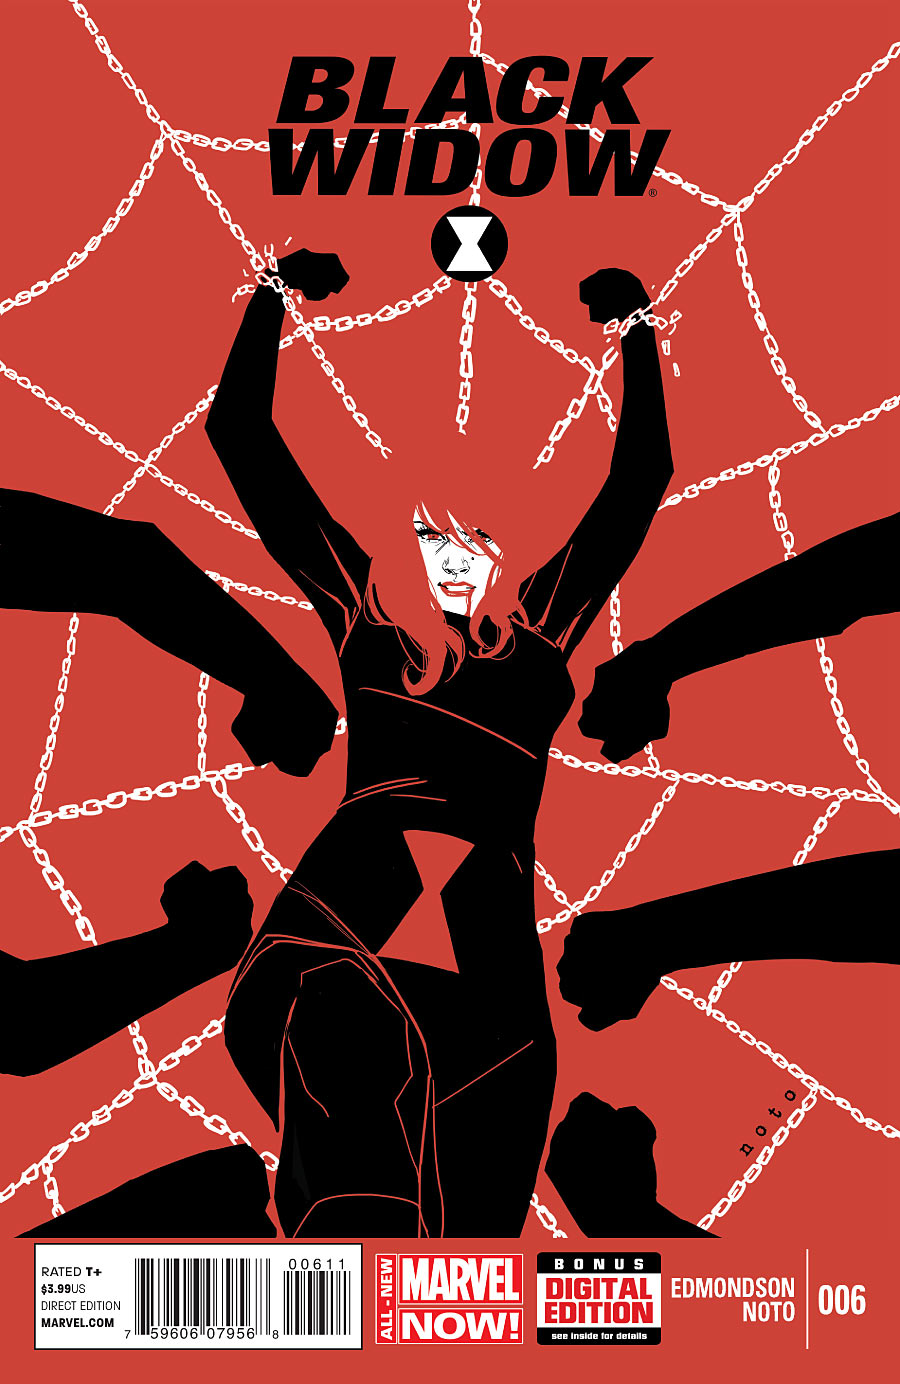 http://www.adventuresinpoortaste.com/wp-content/uploads/2014/05/Black-Widow-6-Cover.jpg